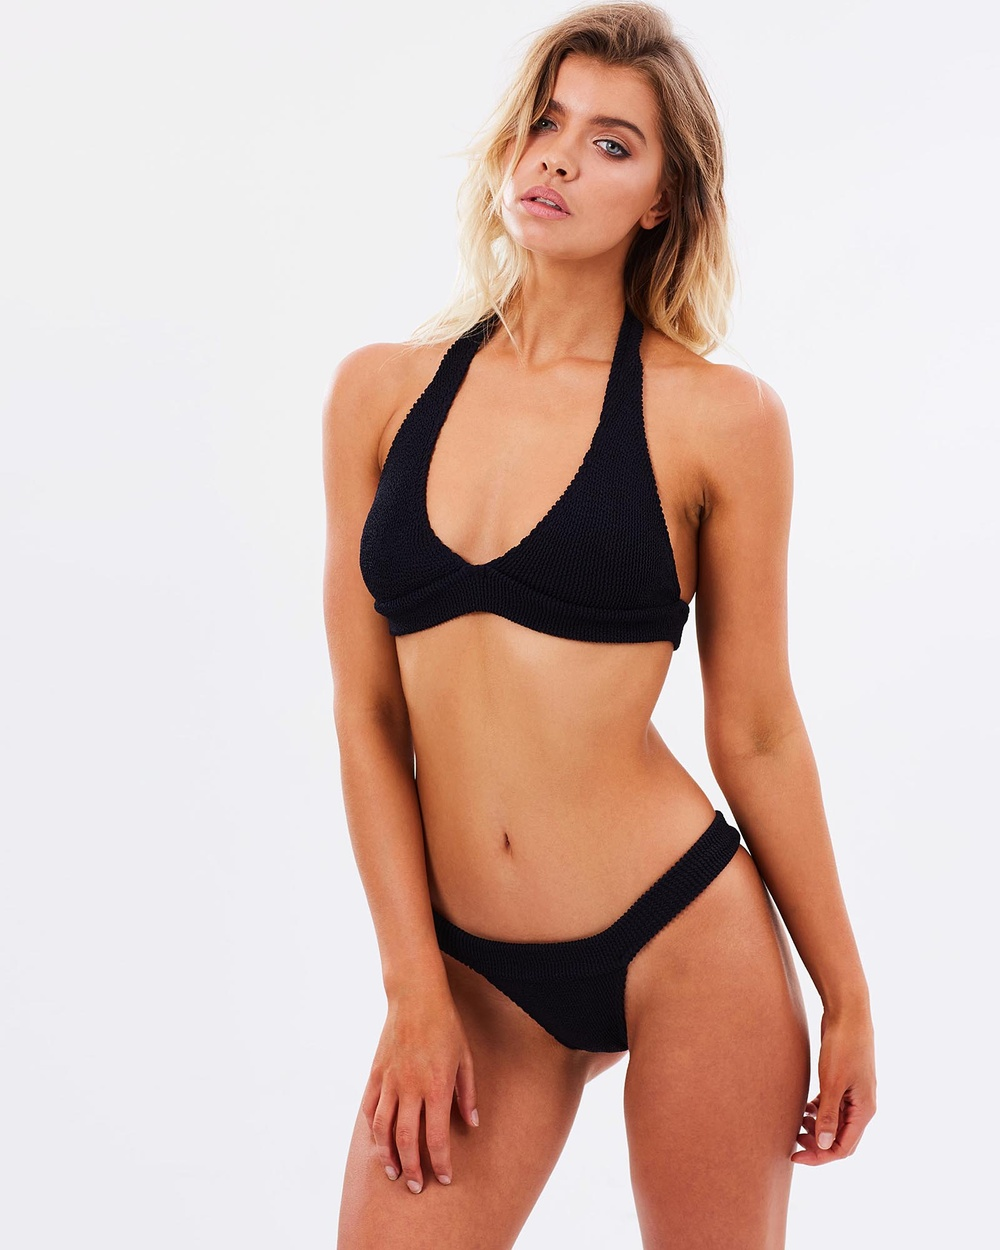 BOUND by Bond-Eye Australia BOUND The Mini Bikini Bikini Set Black BOUND The Mini Bikini